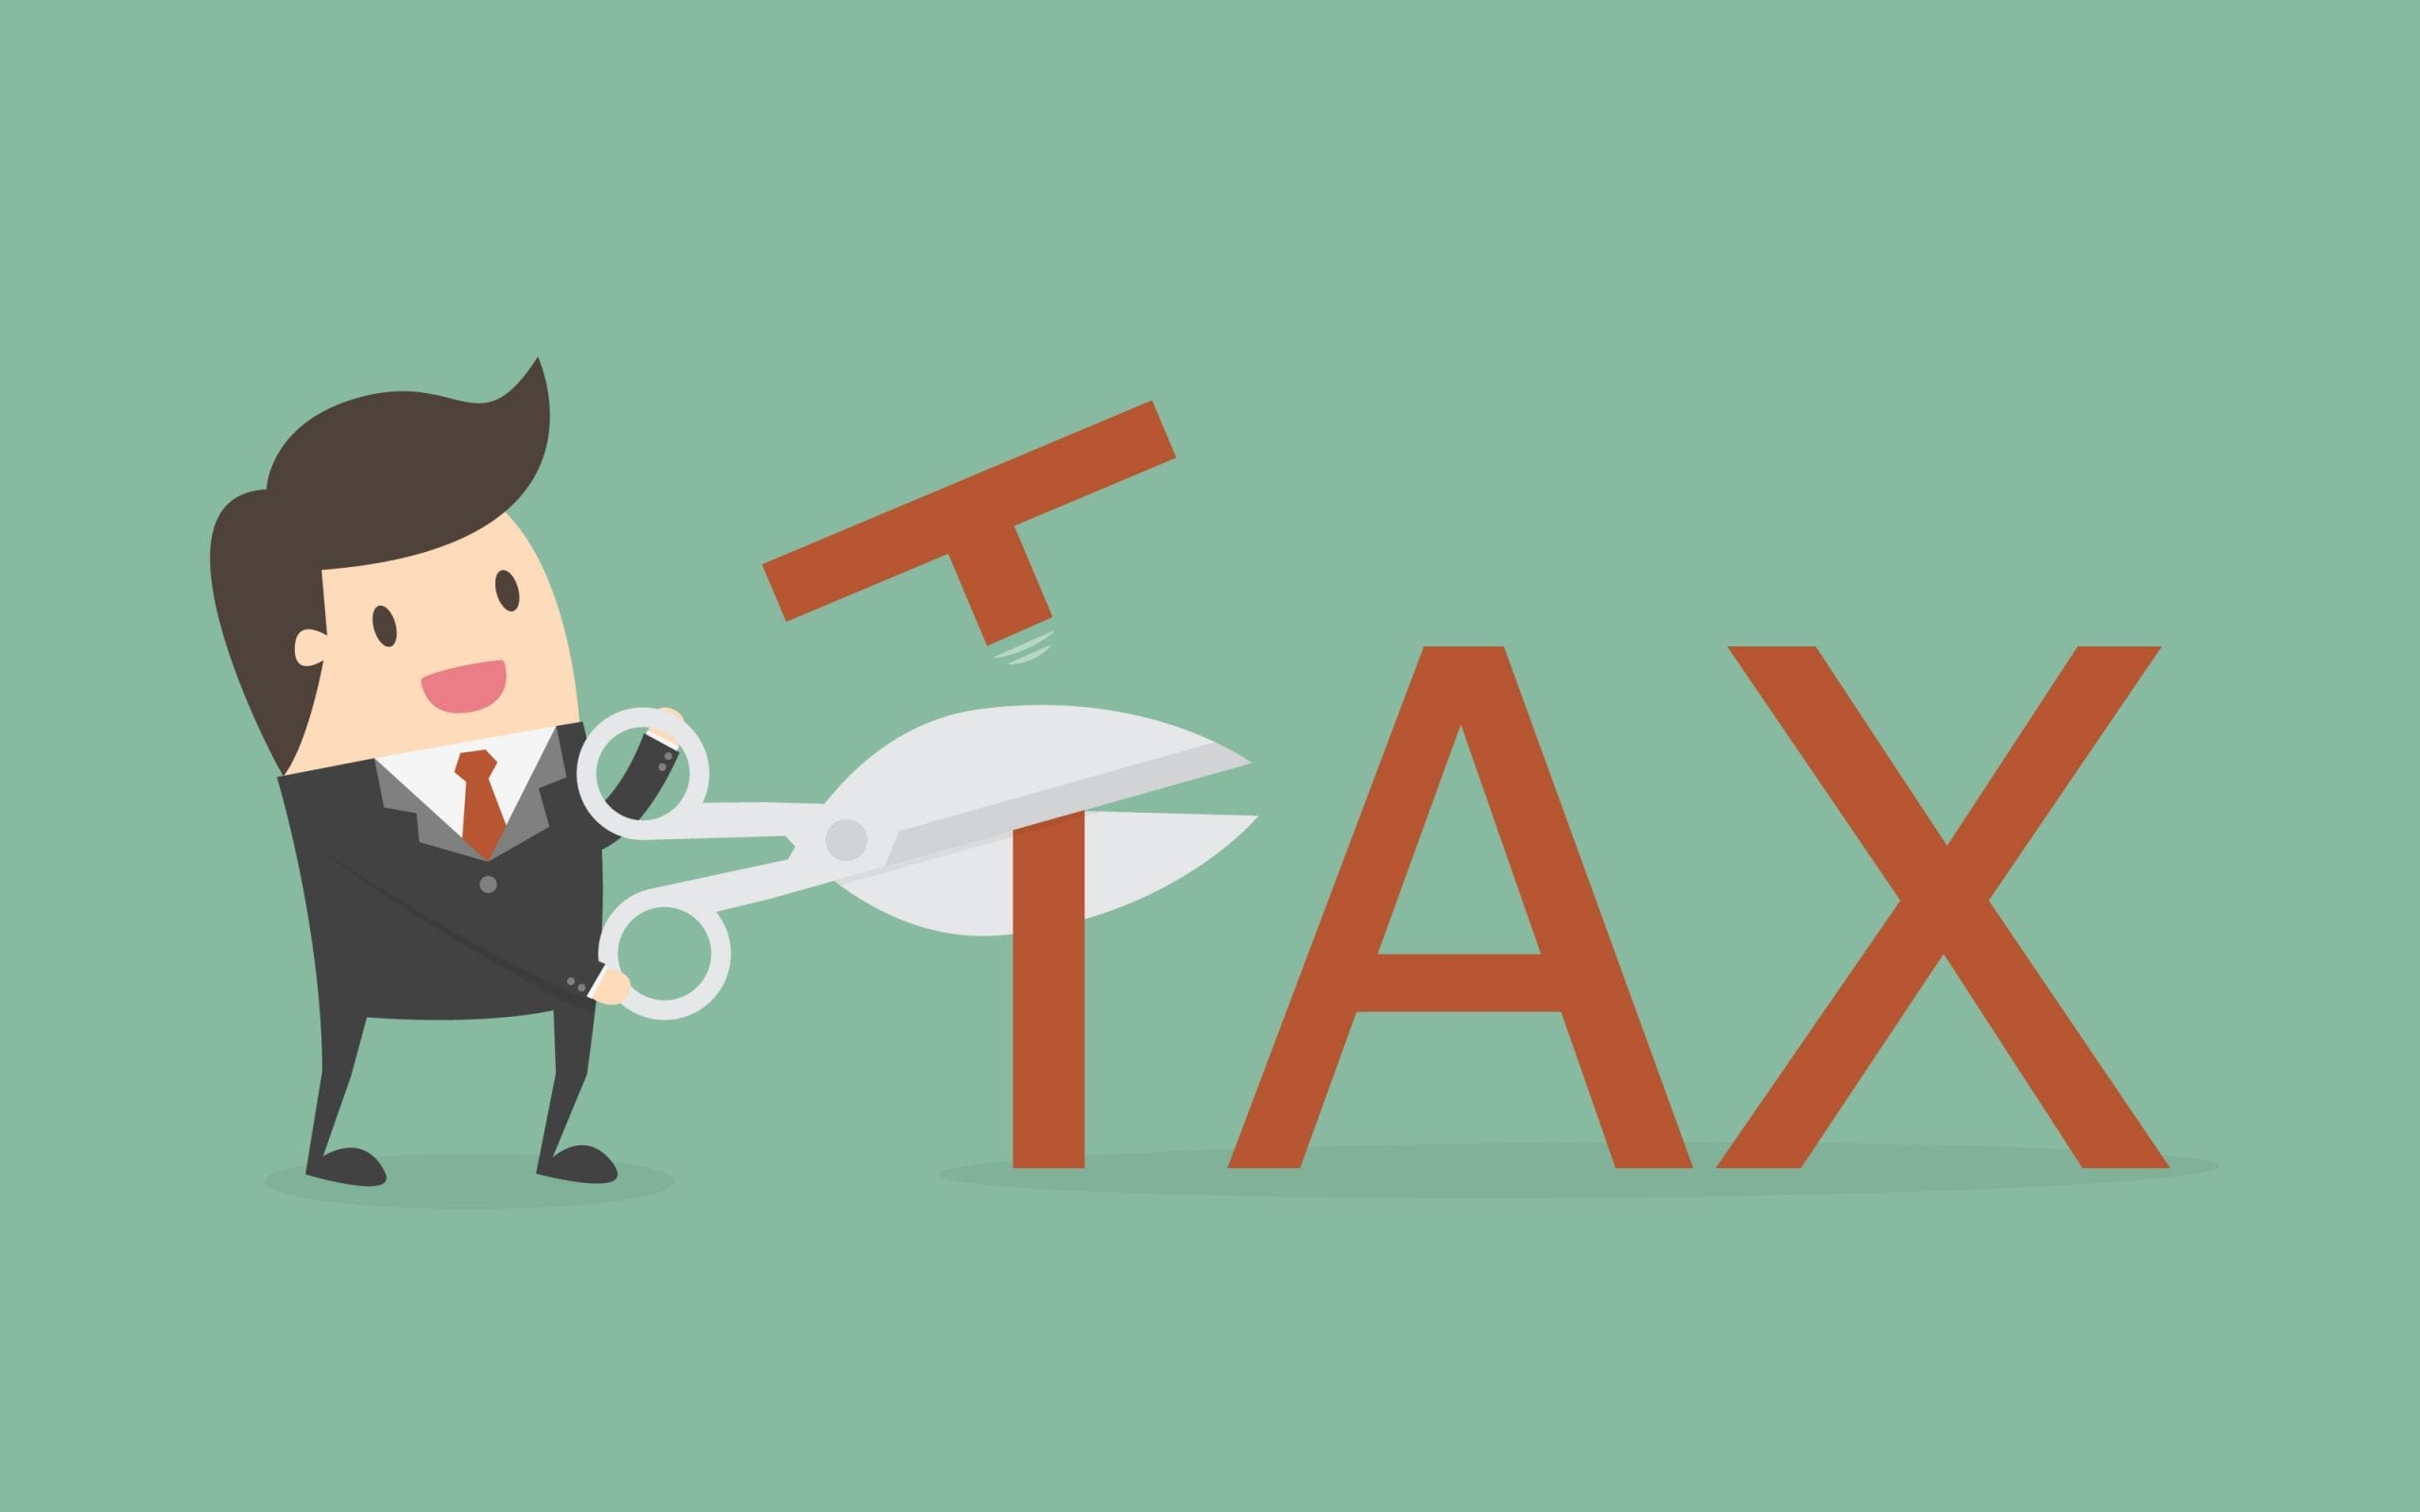 Inclusion of Tax Master